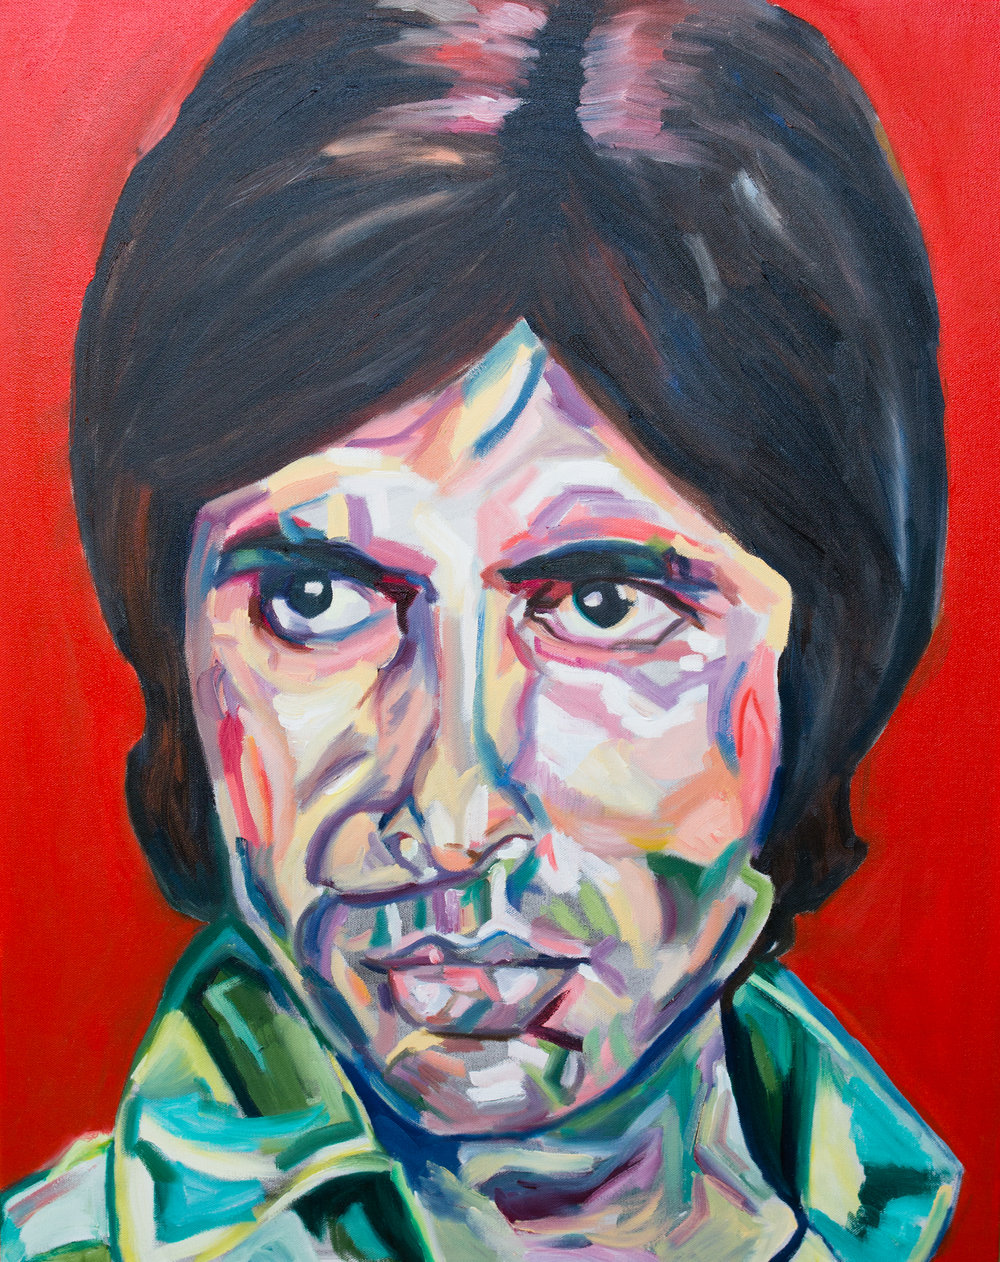 Amitabh's Anger | Oil on canvas | 24 x 30"